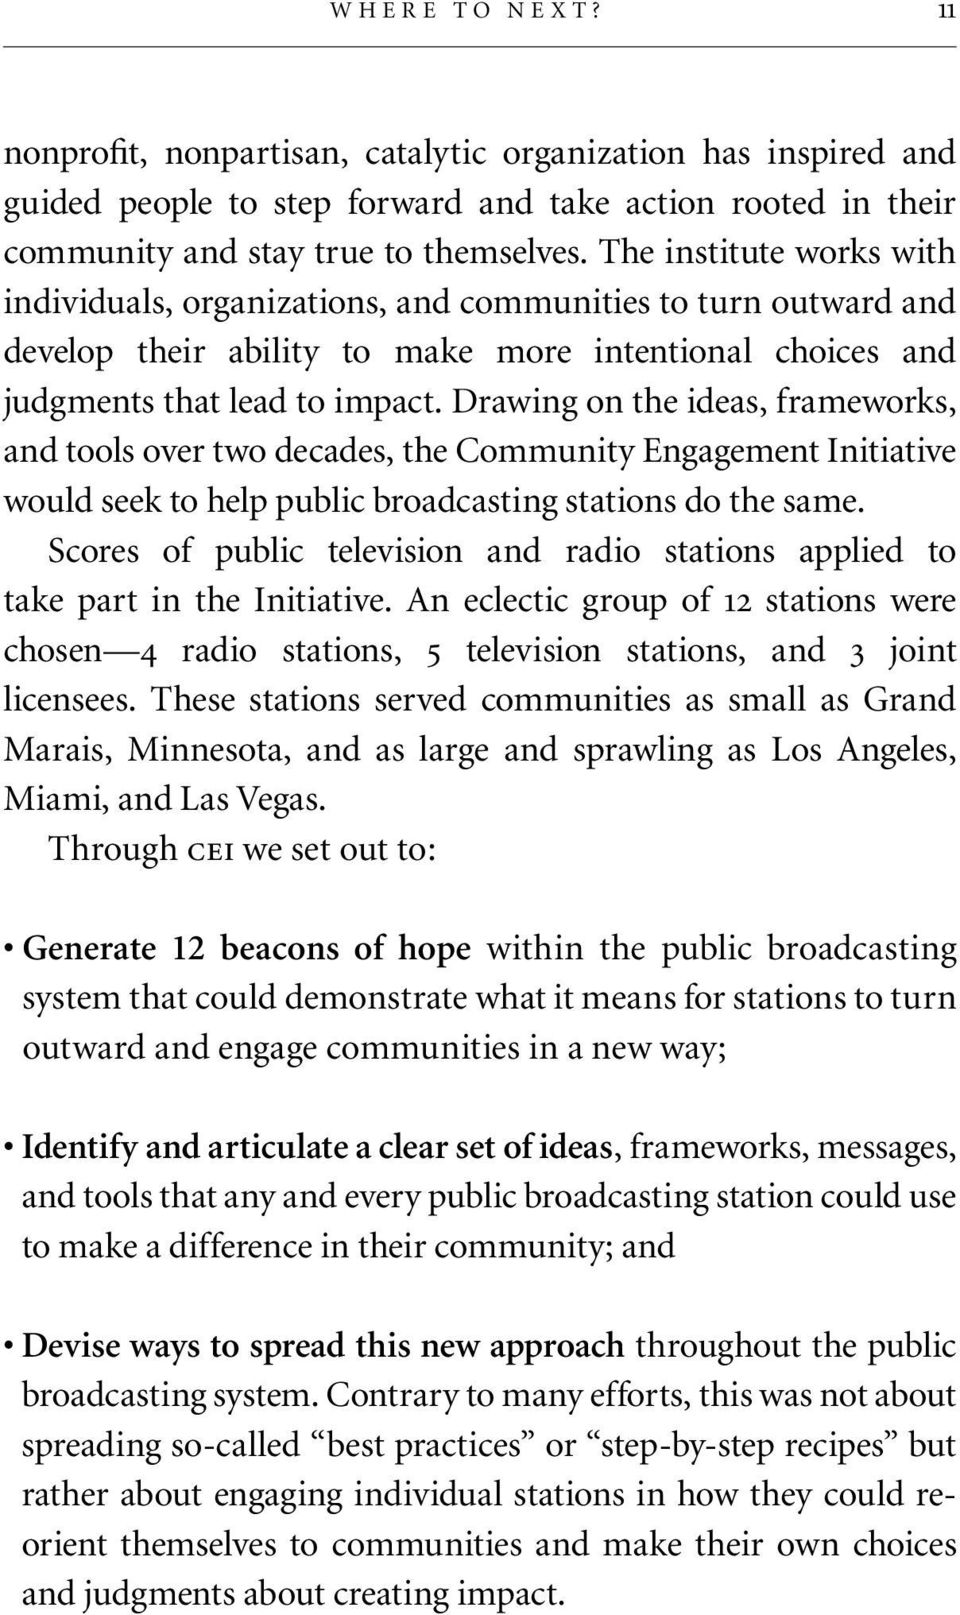 Drawing on the ideas, frameworks, and tools over two decades, the Community Engagement Initiative would seek to help public broadcasting stations do the same.